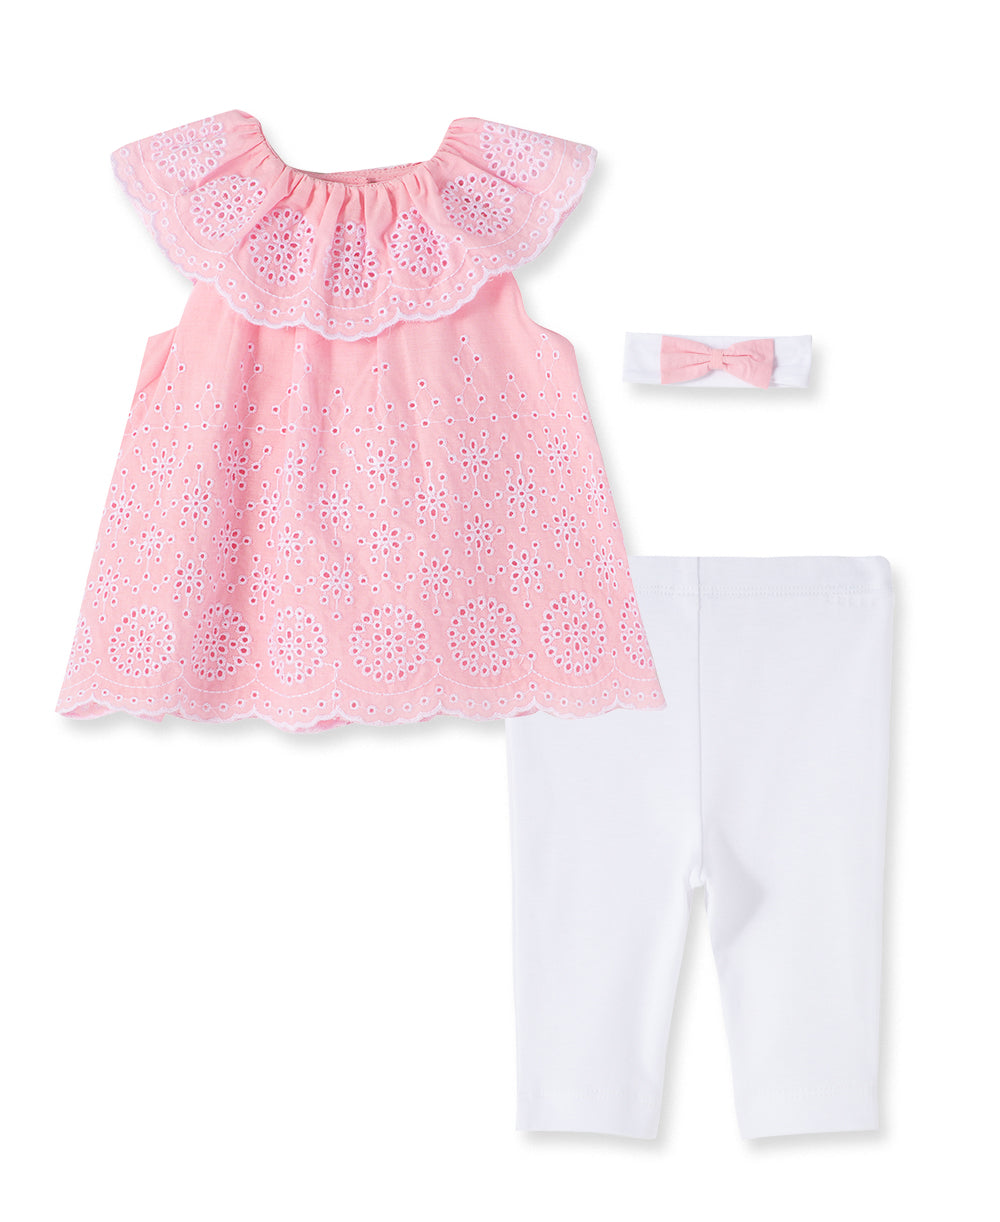 Allover Eyelet Woven Infant Tunic Set